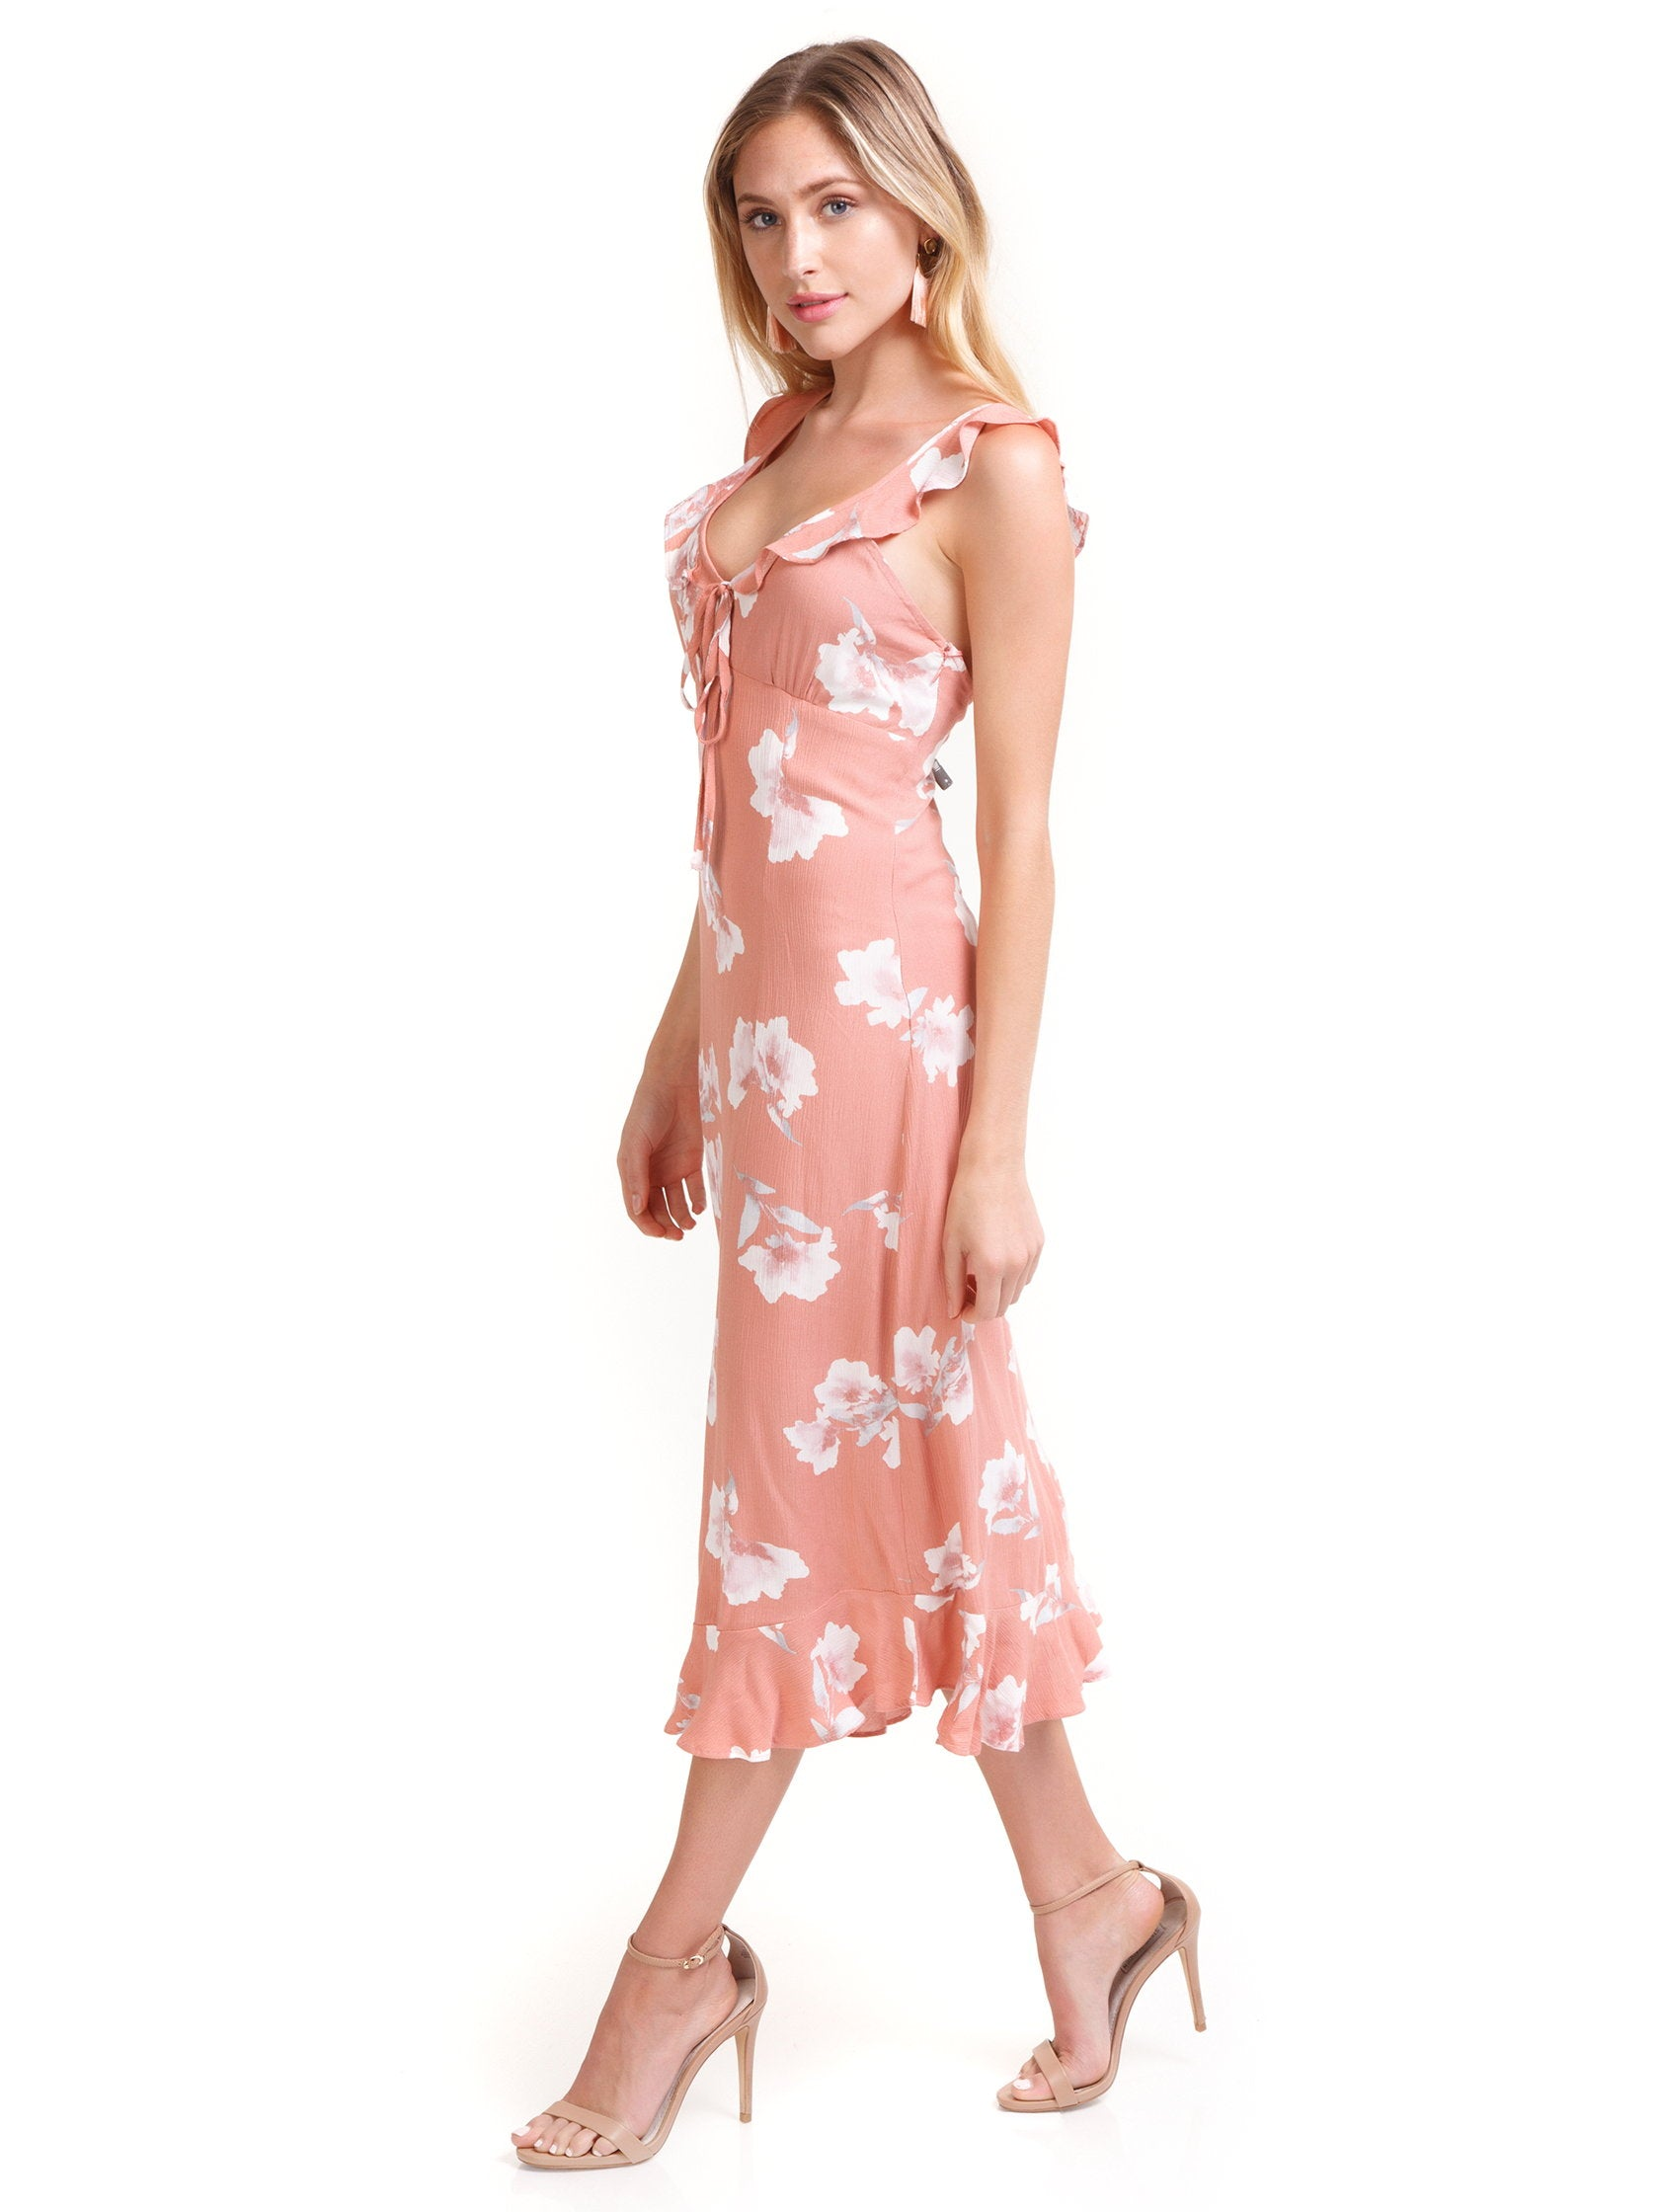 Woman wearing a dress rental from Cotton Candy called Sweet Floral Dress